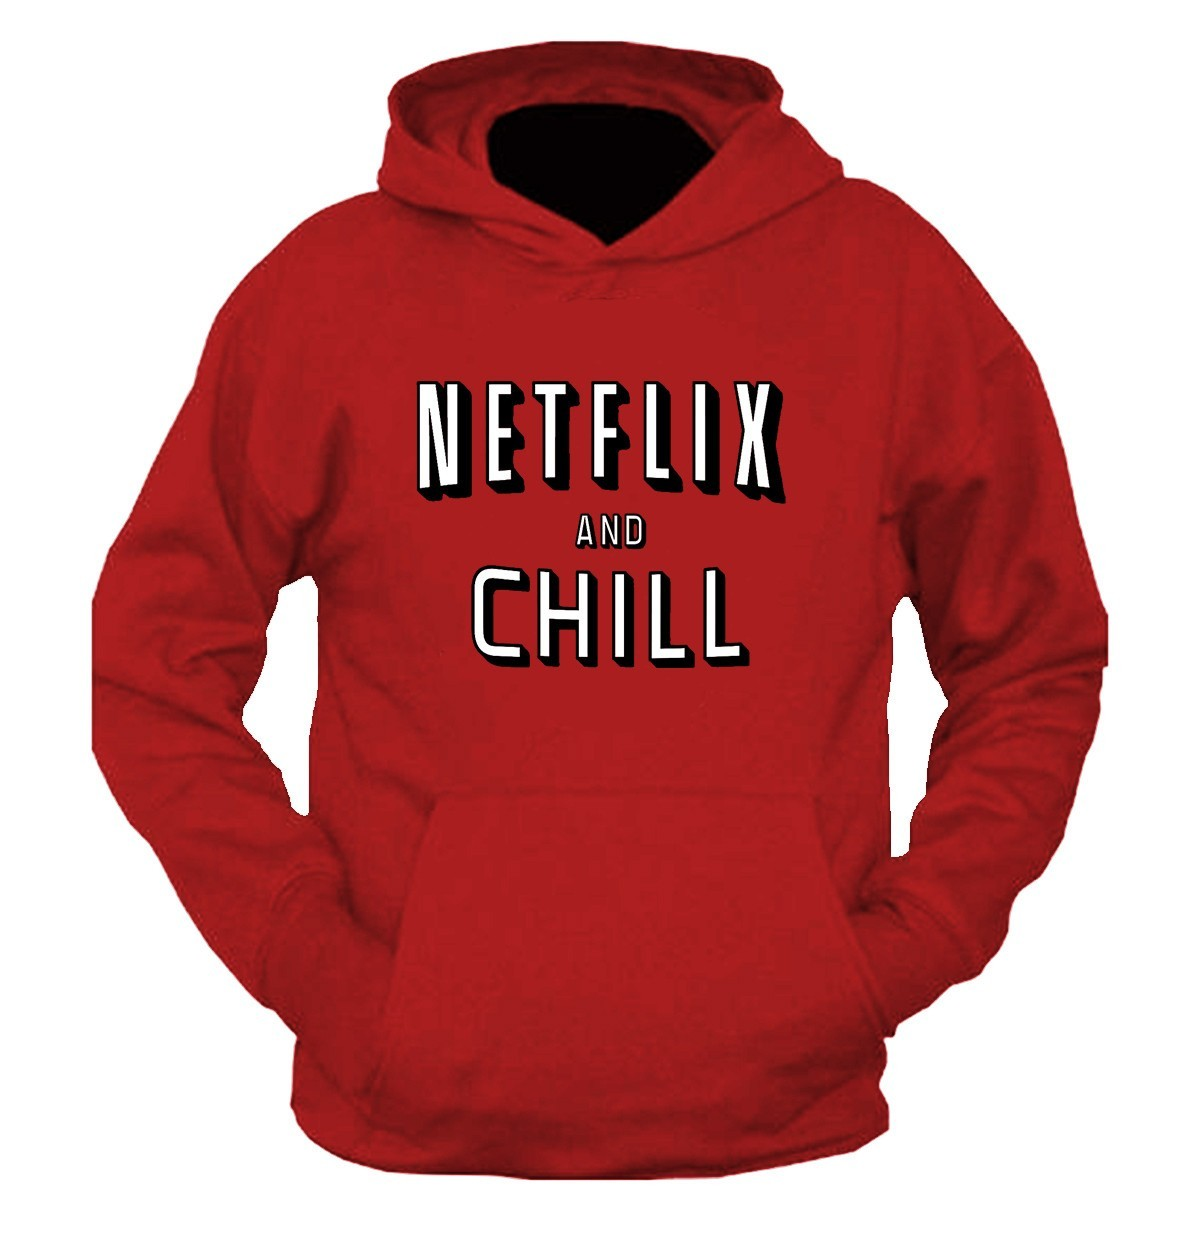 123f5ea79f5 Netflix and Chill Hooded Sweatshirt – SenseOfCustom